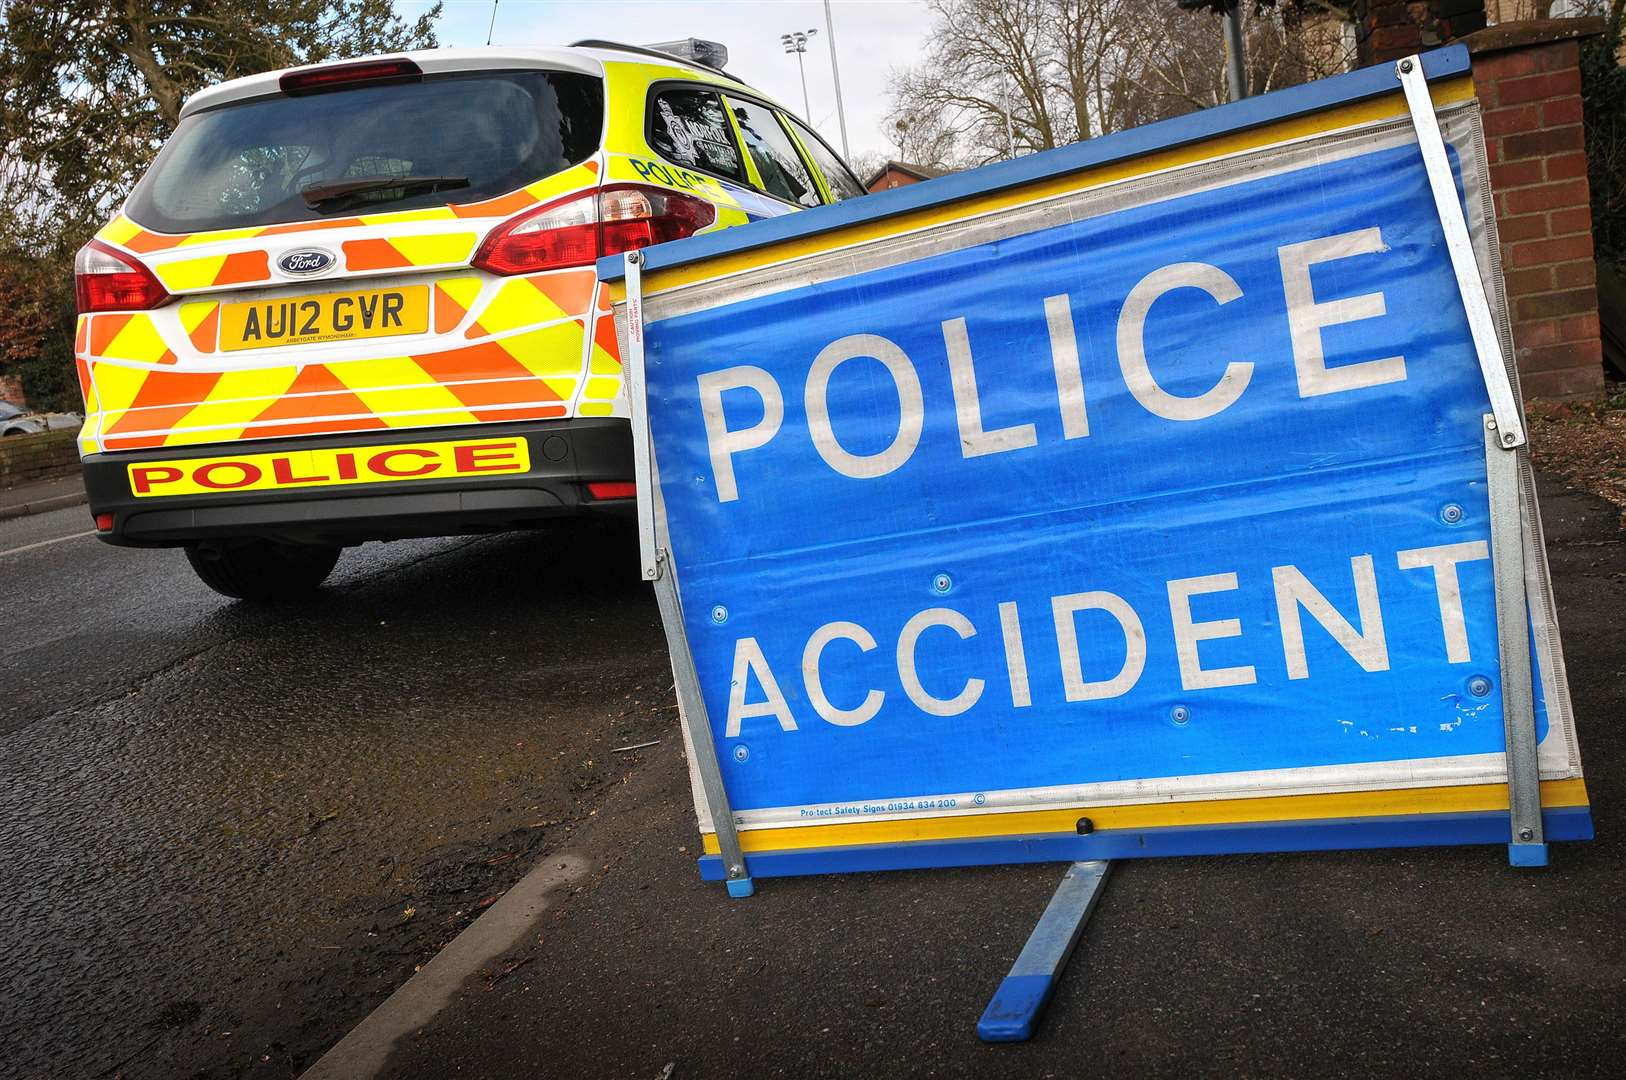 Police are appealing for witnesses after a fatal crash